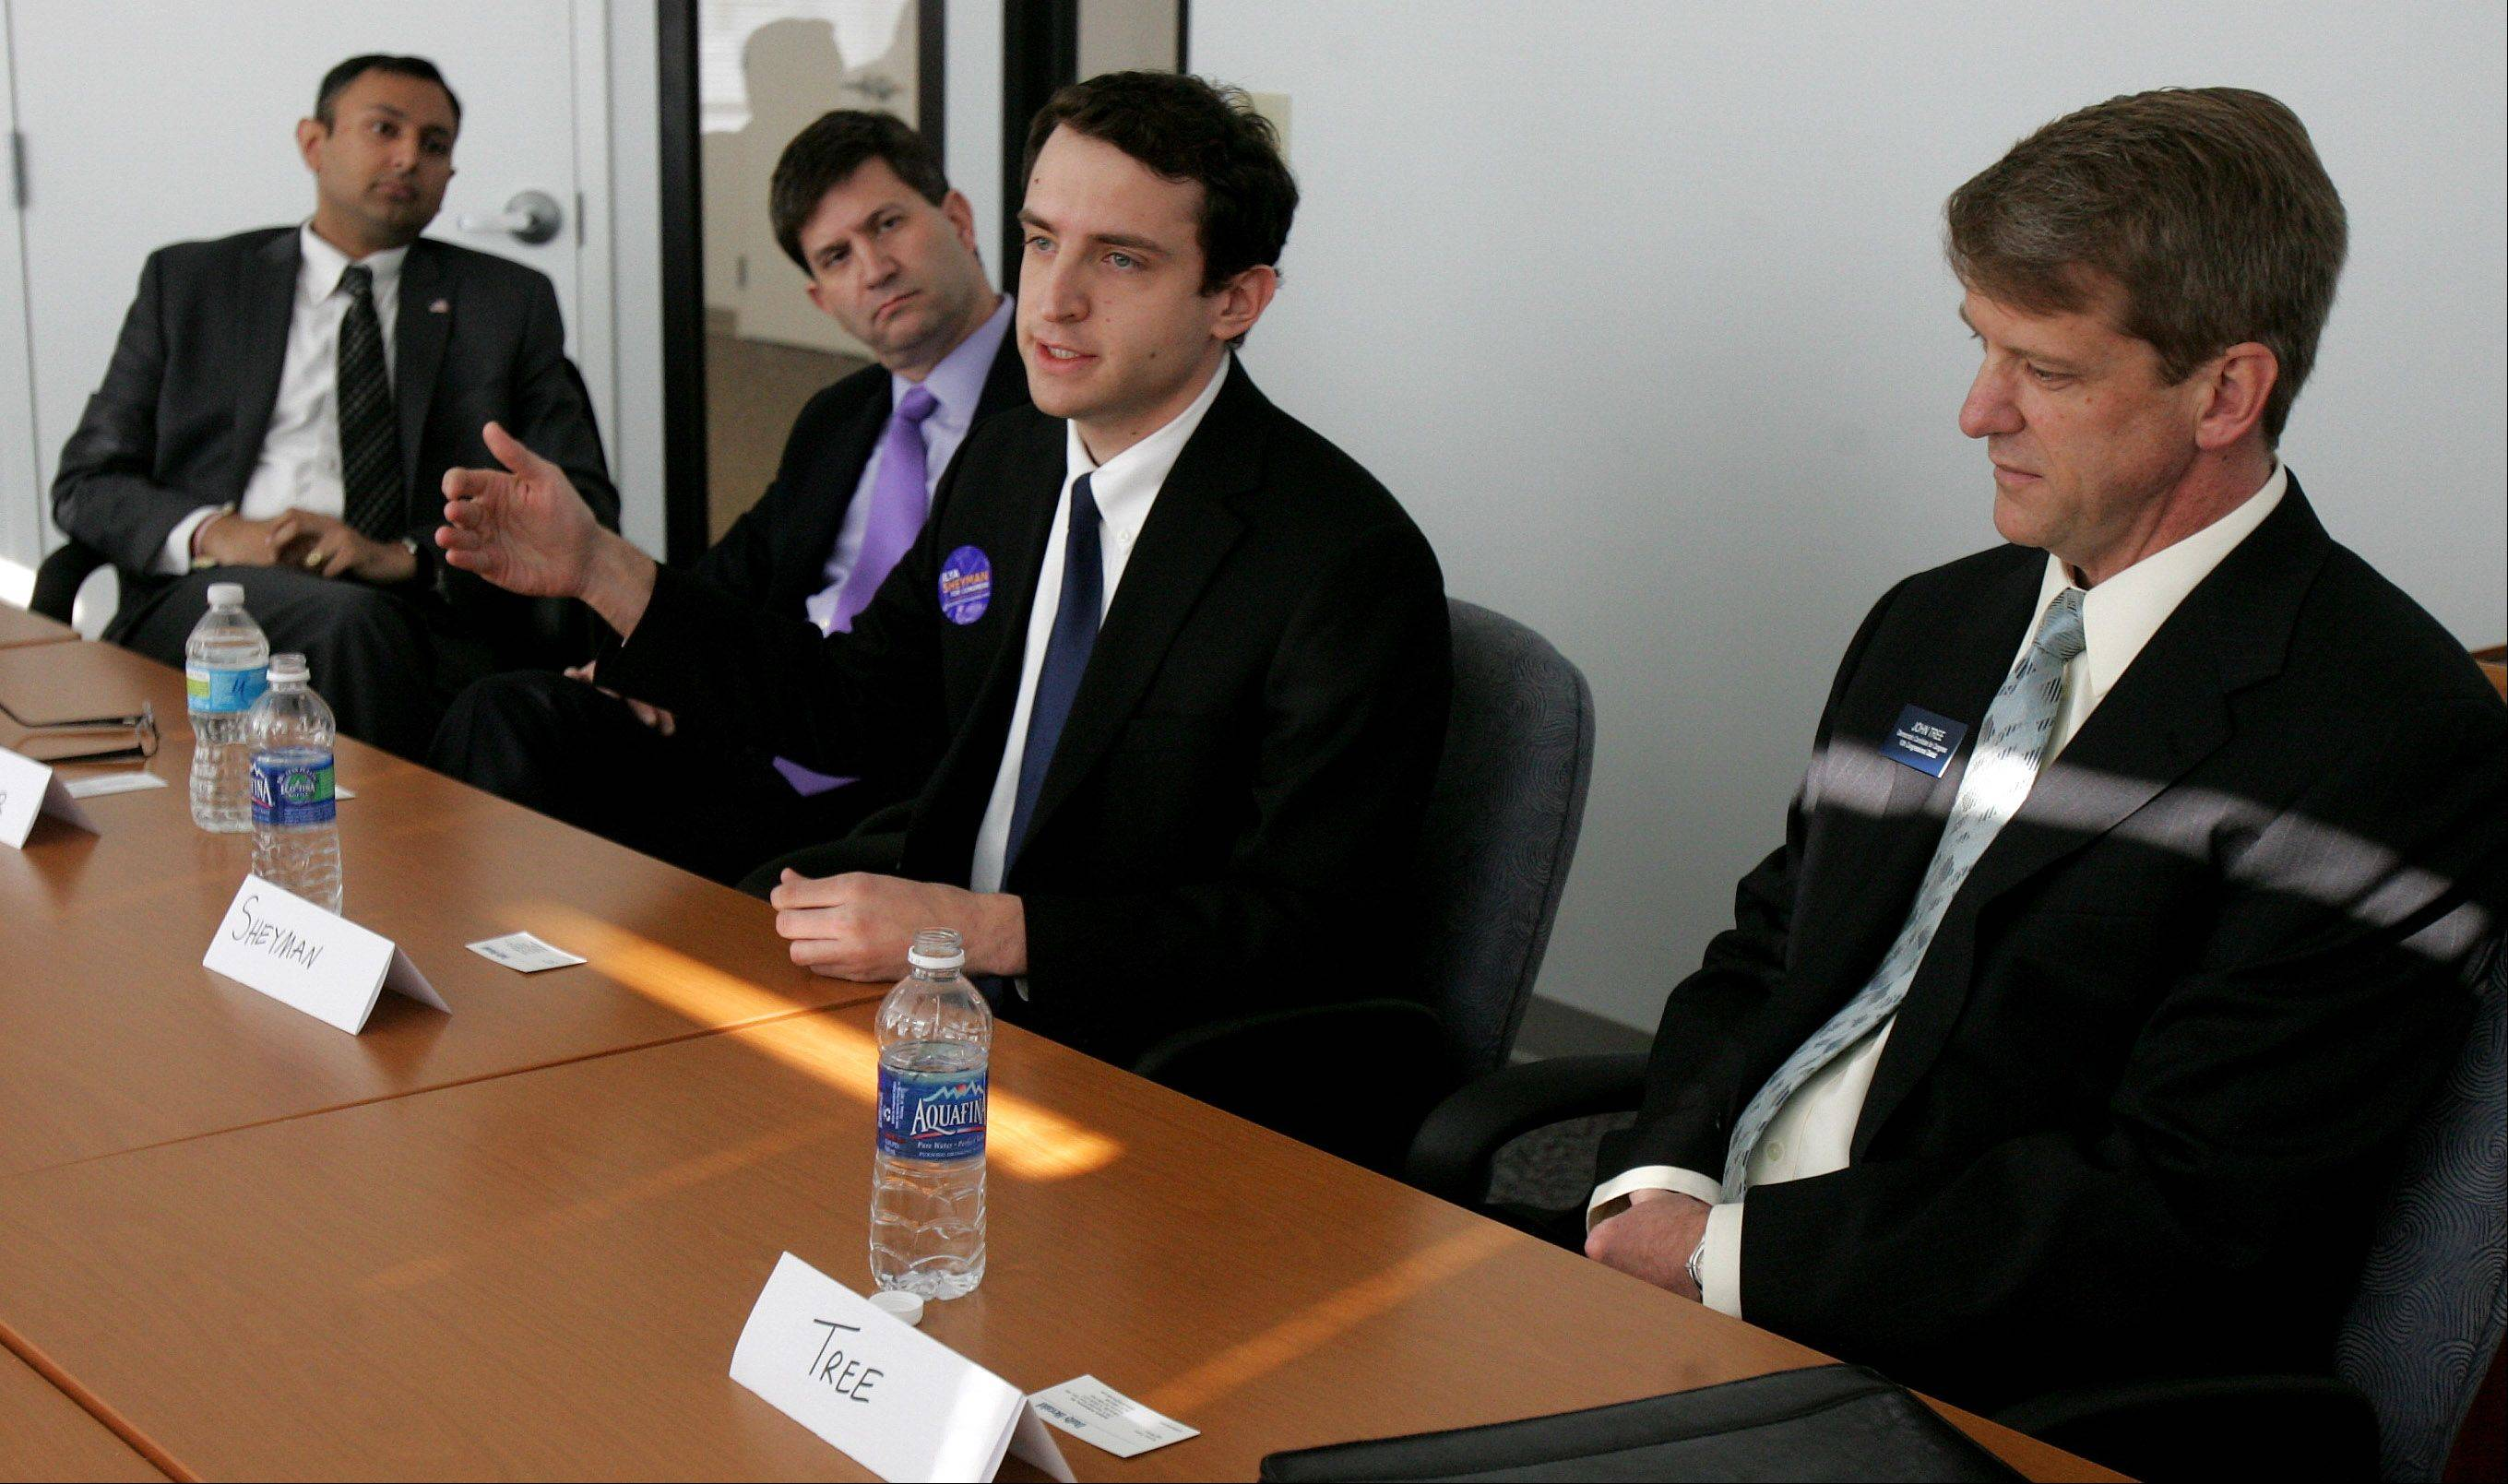 Democratic candidates Vivek Bavda, from left, Brad Schneider, Ilya Sheyman, and John Tree recently met with the Daily Herald at its office in Libertyville.